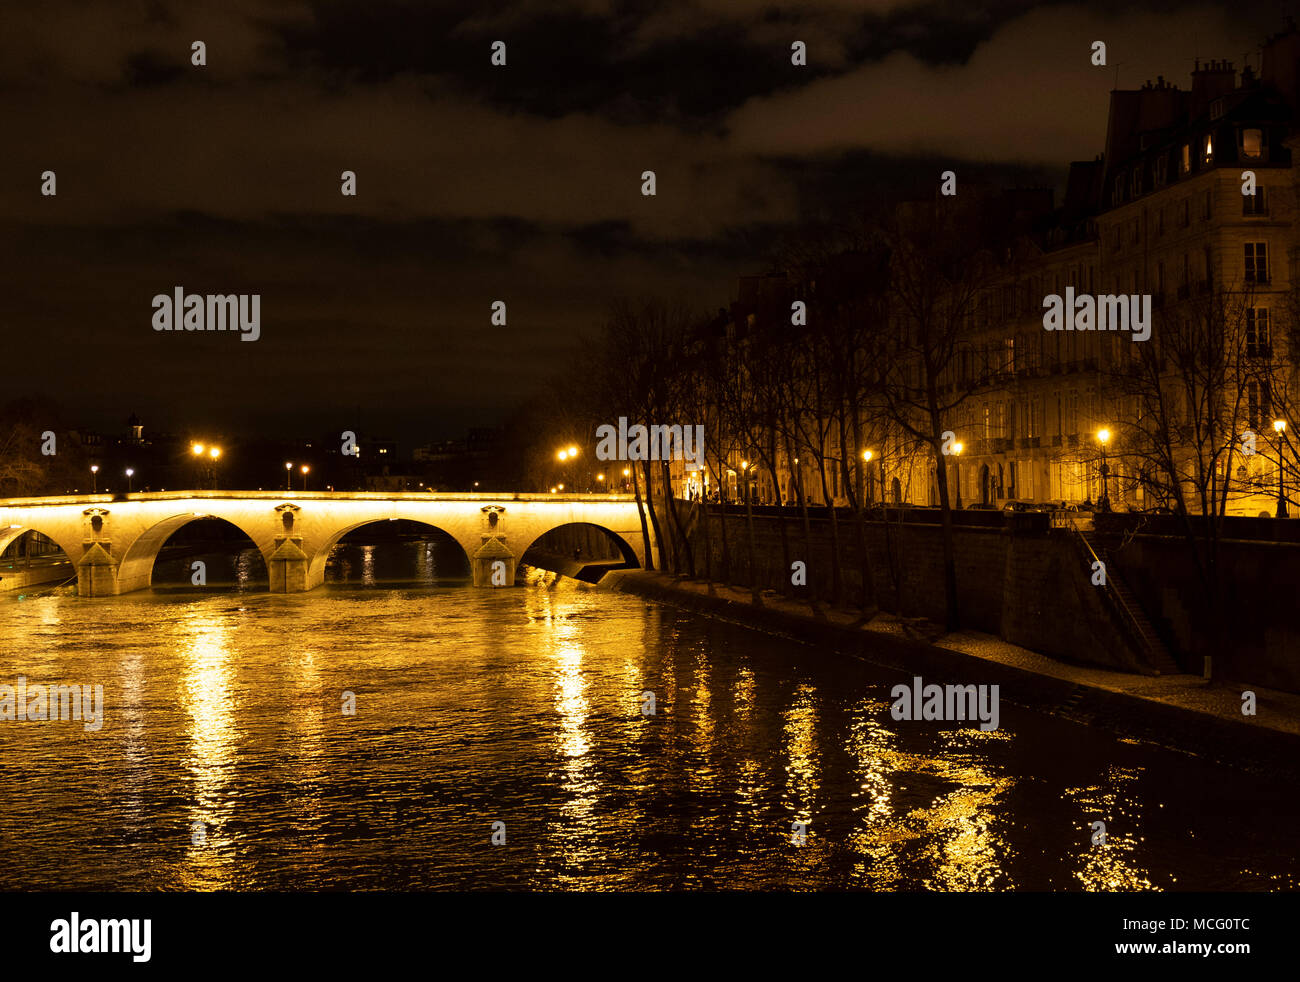 The Pont Marie, the Il St Louis and lights reflected on the Seine at night. Paris, France, Europe - Stock Image